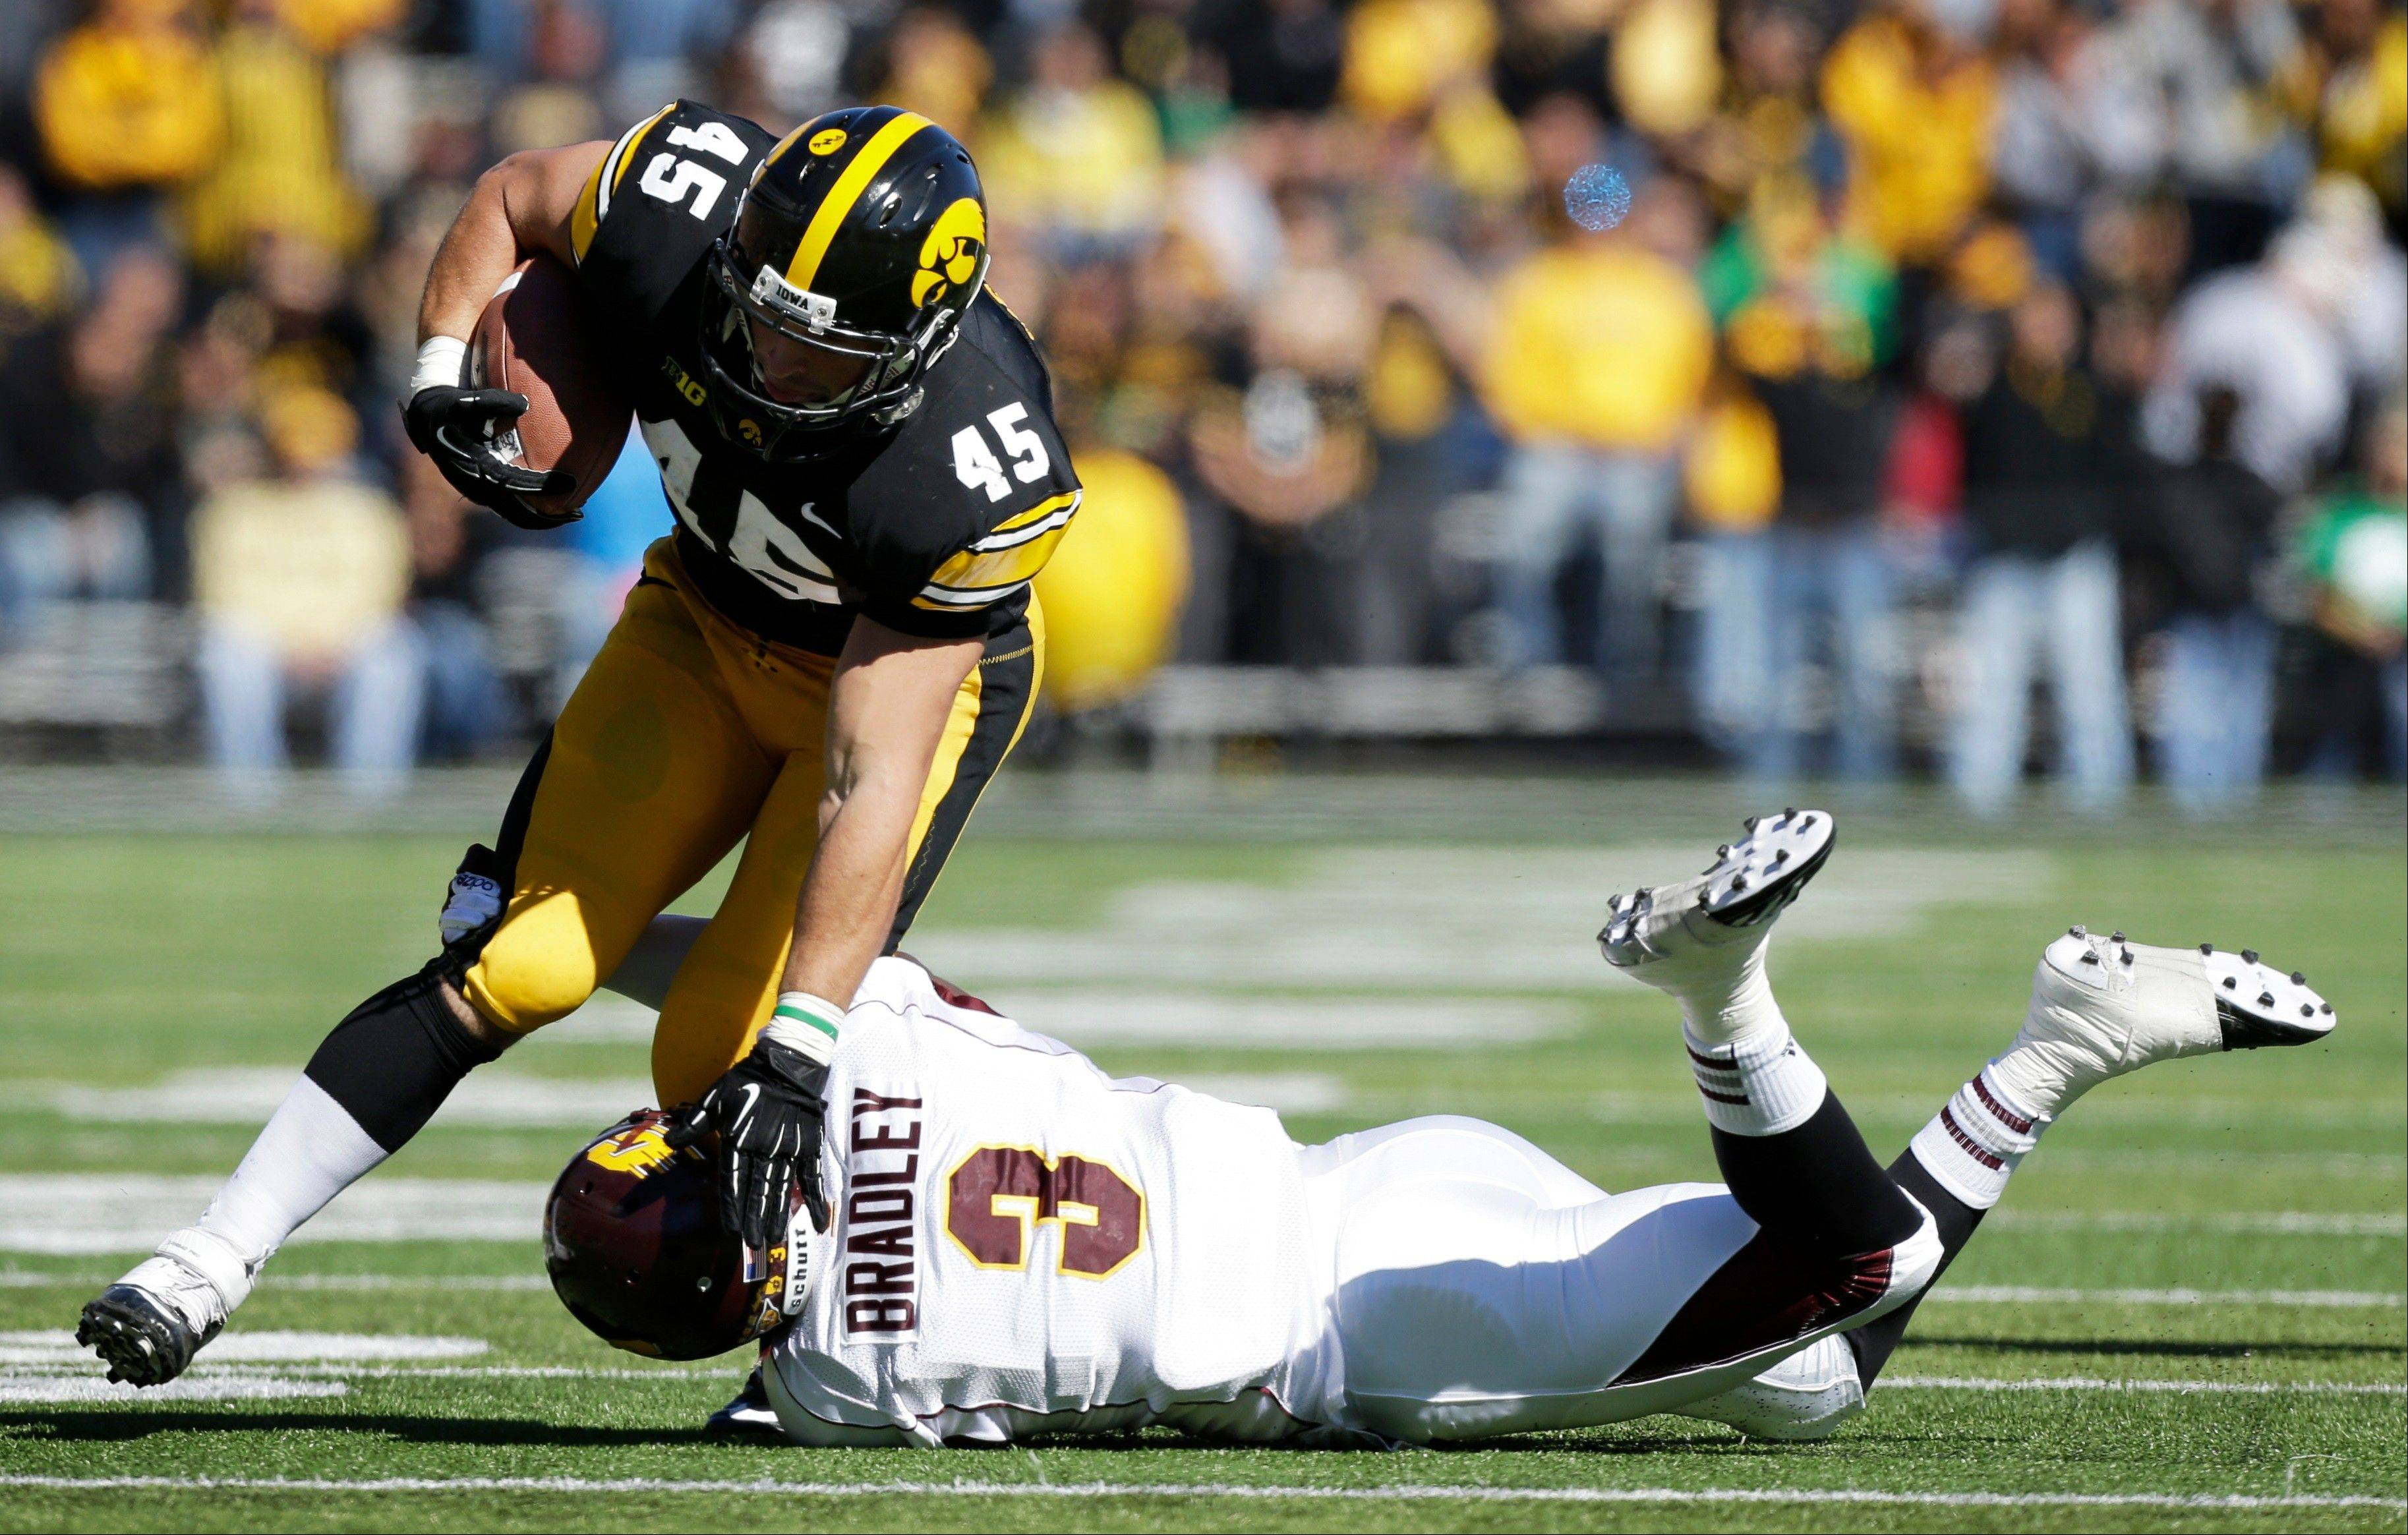 Iowa fullback Mark Weisman tries to break a tackle by Central Michigan defensive back Taylor Bradley during last Saturday's game in Iowa City. The 2-2 Hawkeyes play 4-0 Minnesota at home today.